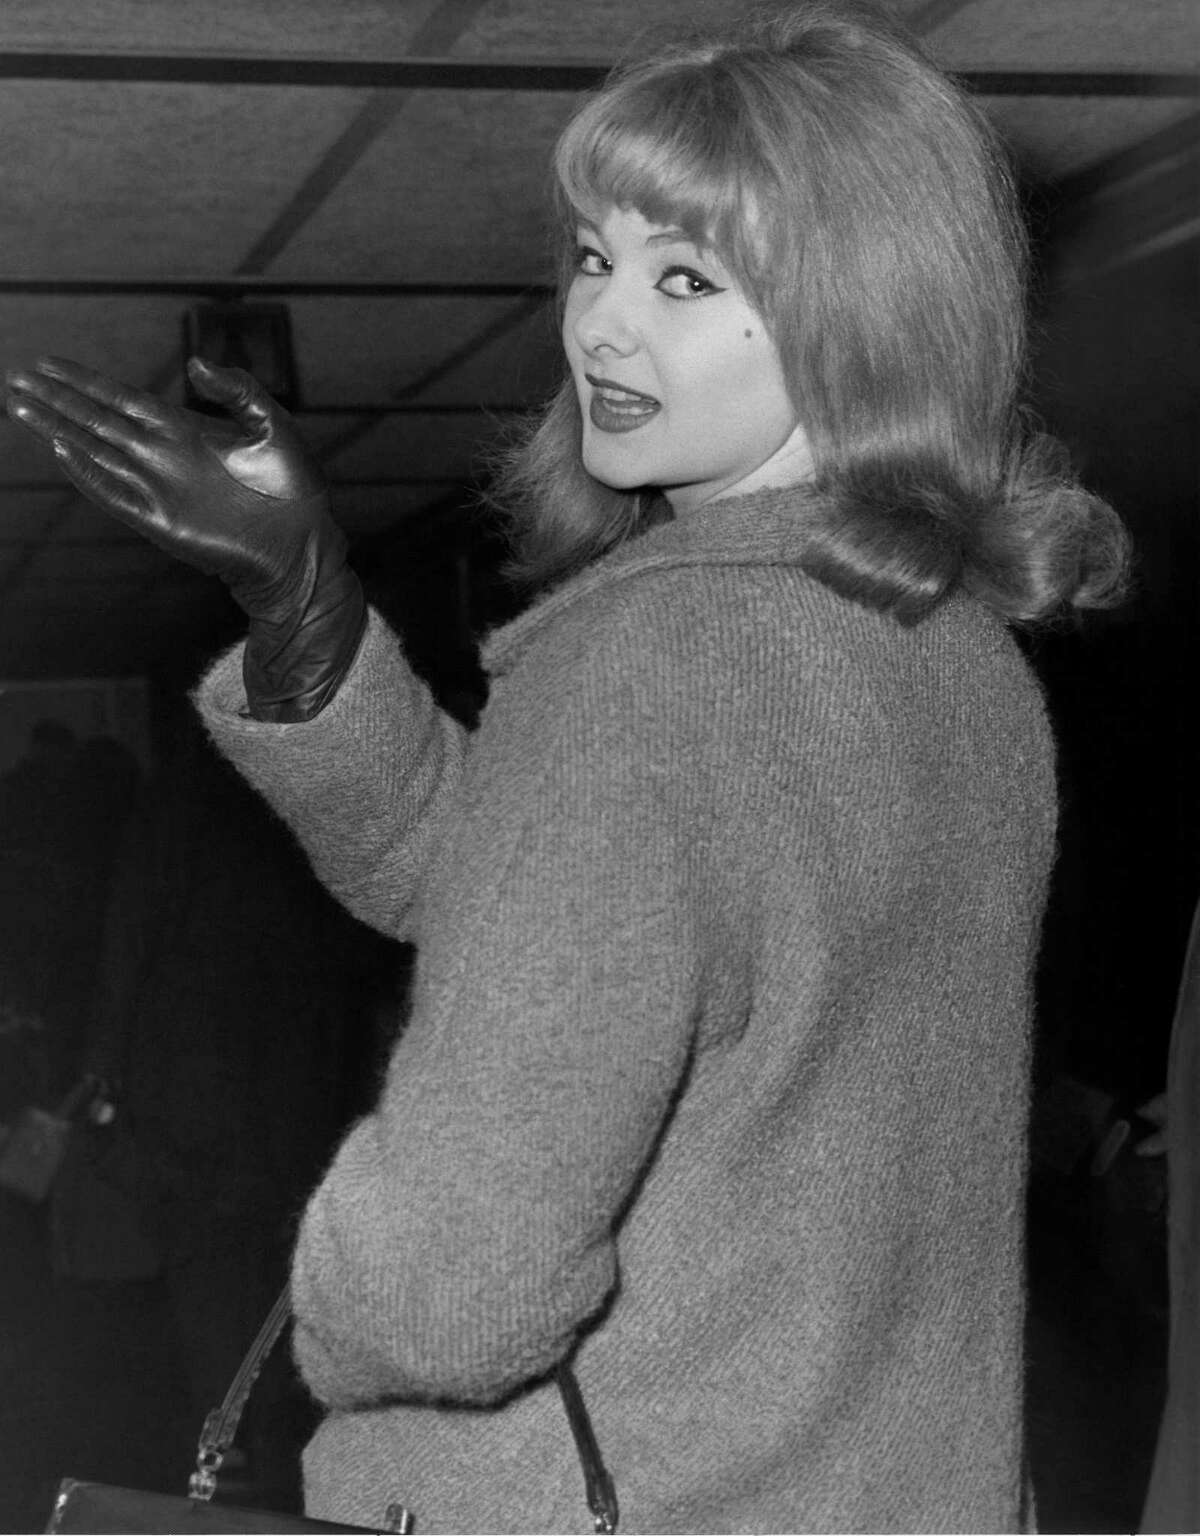 """FILE - In this Jan. 7, 1964 file photo, Mandy Rice-Davies waves goodbye at London Airport as she leaves for Munich for a singing engagement. Mandy Rice-Davies, a key figure in Britain's biggest Cold War political scandal, the ìProfumo Affair,î has died. She was 70. Her PR firm said Friday Dec. 19, 2014, that Rice-Davies died Thursday evening """"after a short battle with cancer."""""""